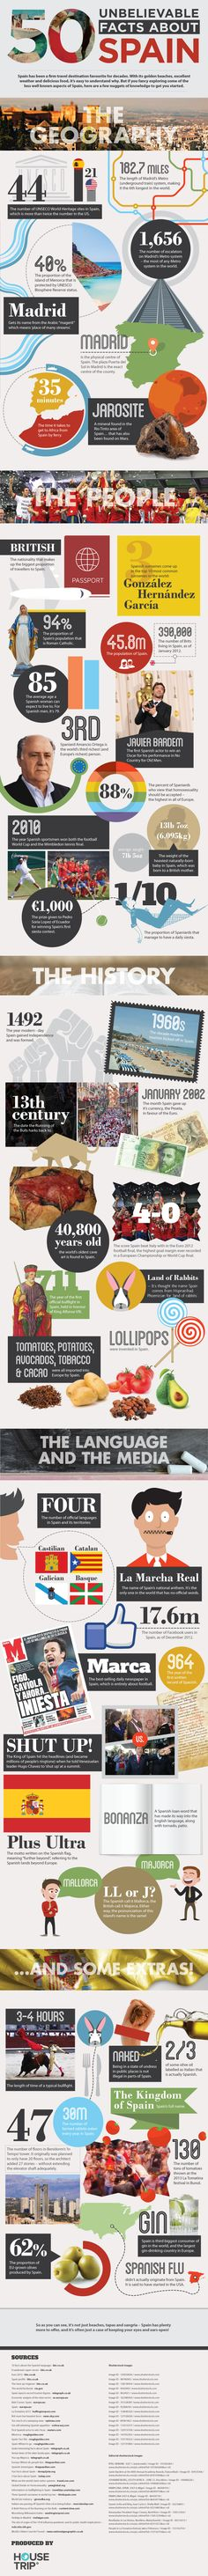 50 UNBELIEVABLE FACTS ABOUT SPAIN [INFOGRAPHIC] #SPAIN #FACTS #INFOGRAPHIC